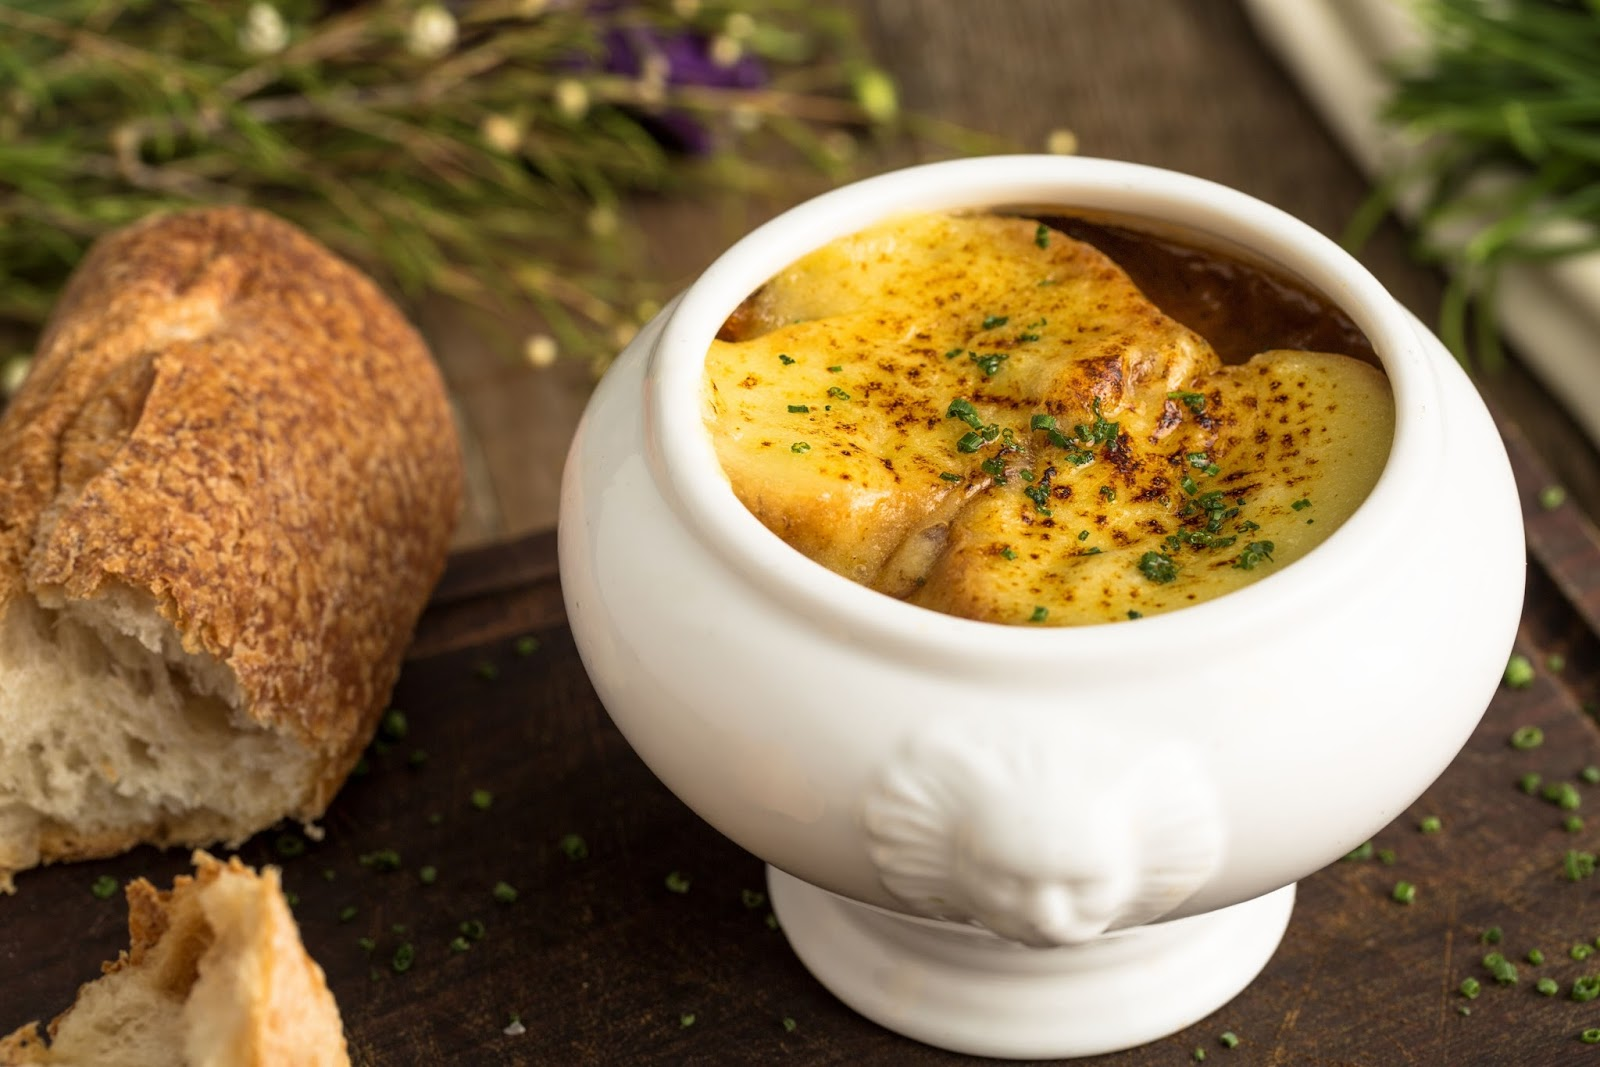 Plat du Jour, french onion soup, onion soup, french, melted cheese, french baguette